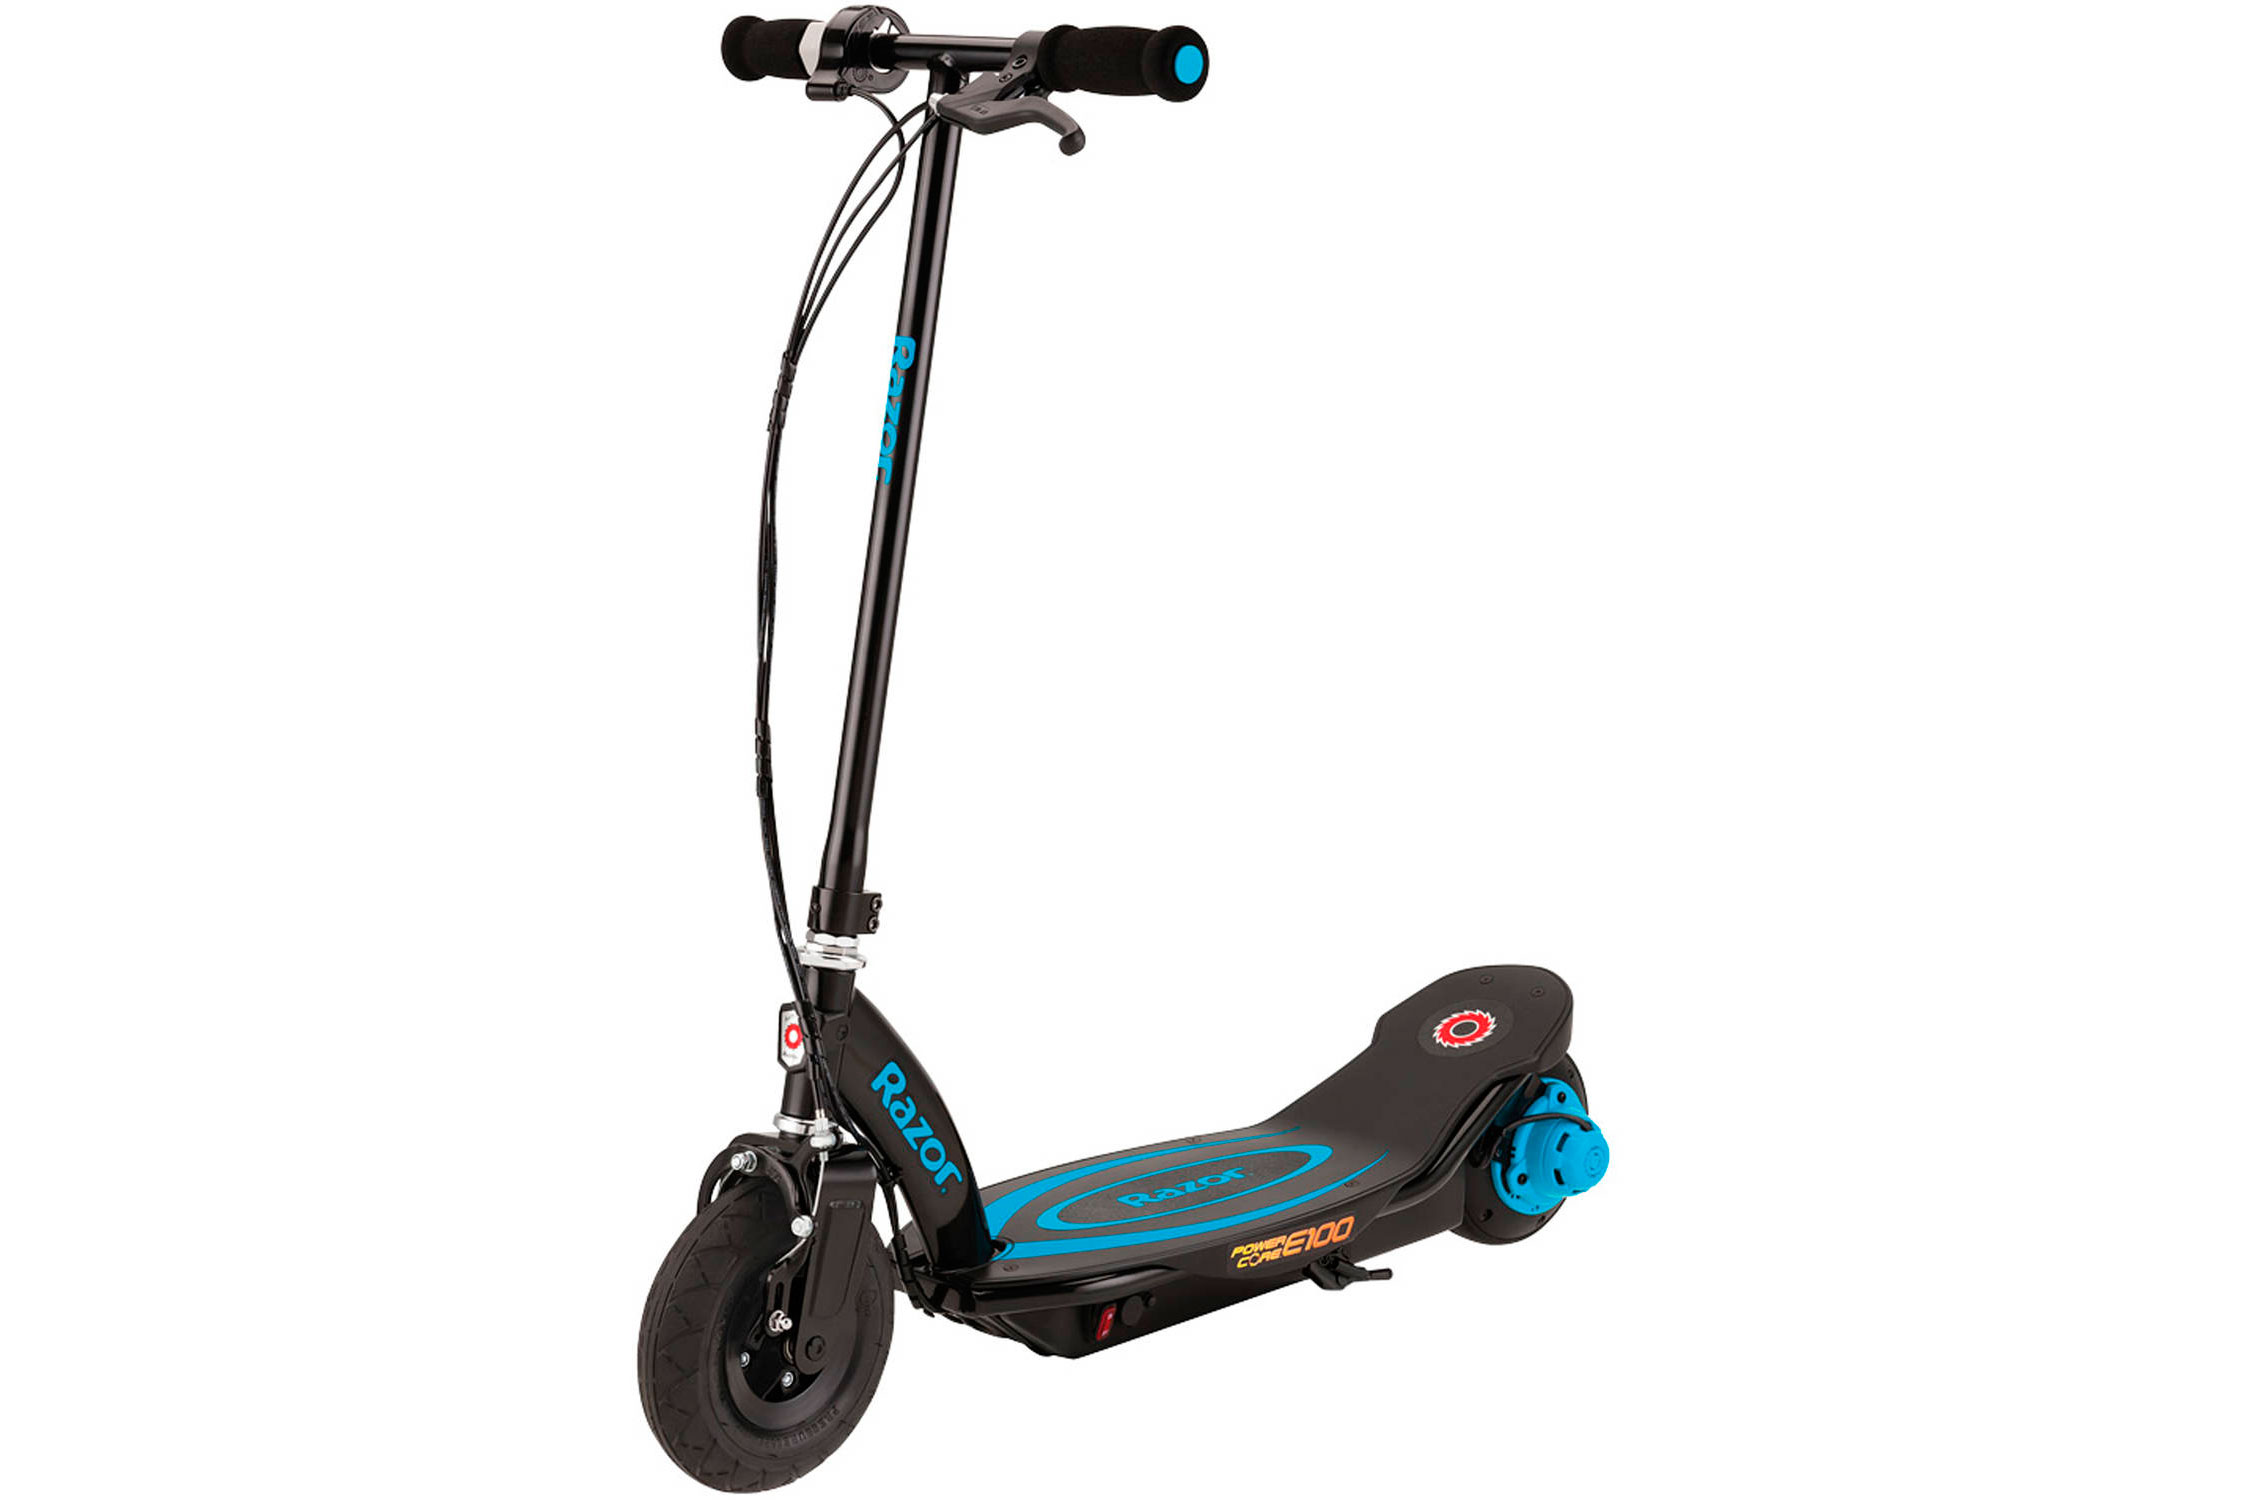 Razor Power Core E100 Electric Scooter Gearscoot